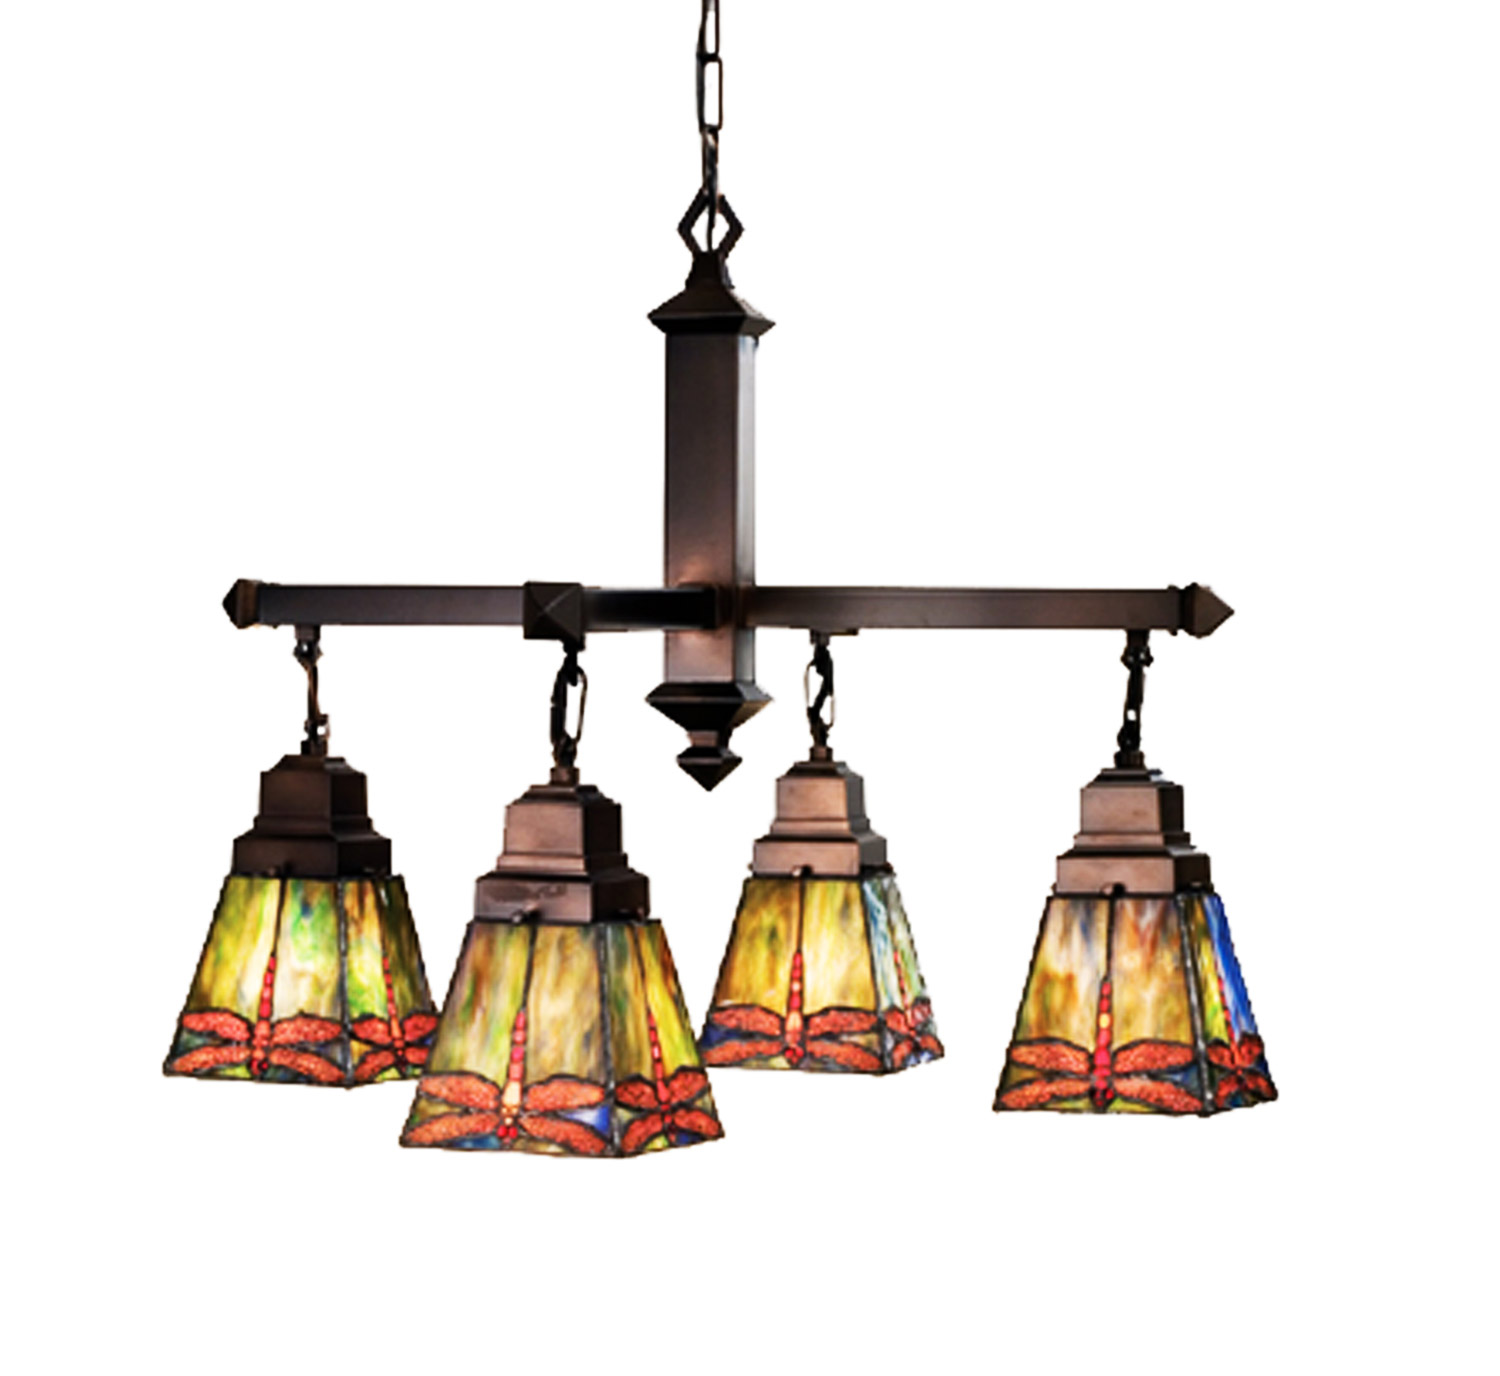 chandelier outdoor full of hunter mission lighting modern fixtures post light size craftsman ceiling fans style lowes